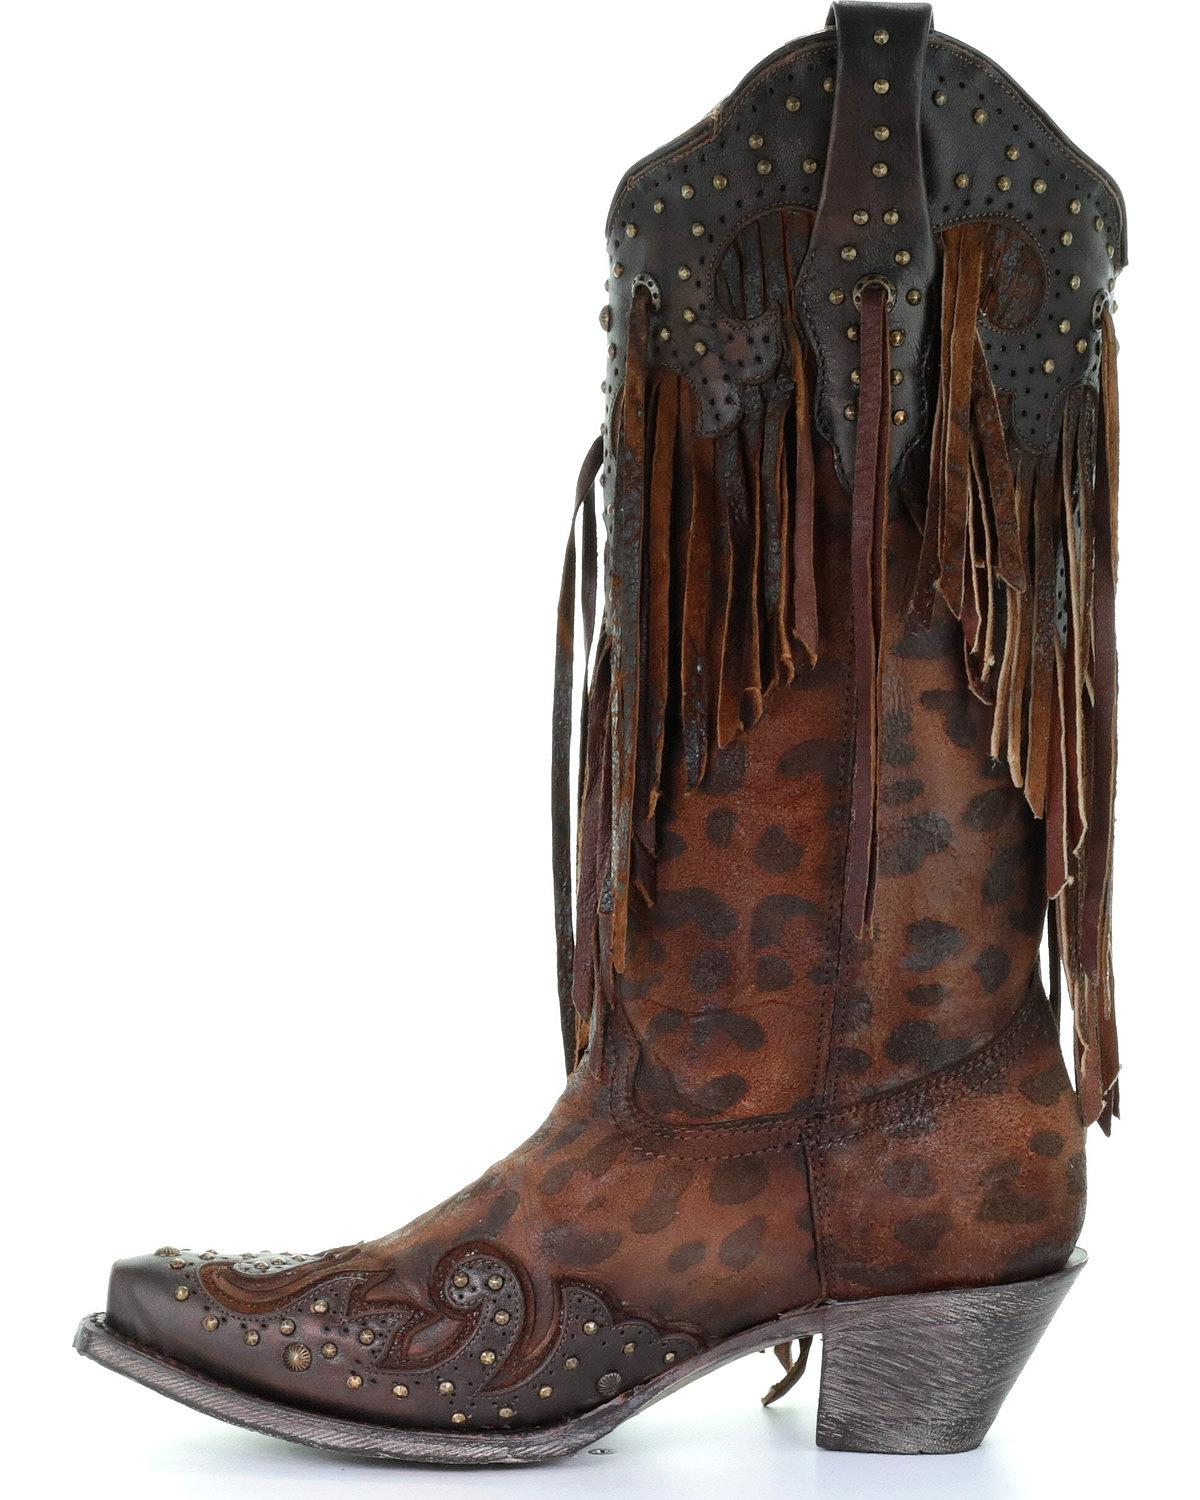 A3618 Corral Women/'s Leopard Stud and Fringe Cowgirl Boot Snip Toe